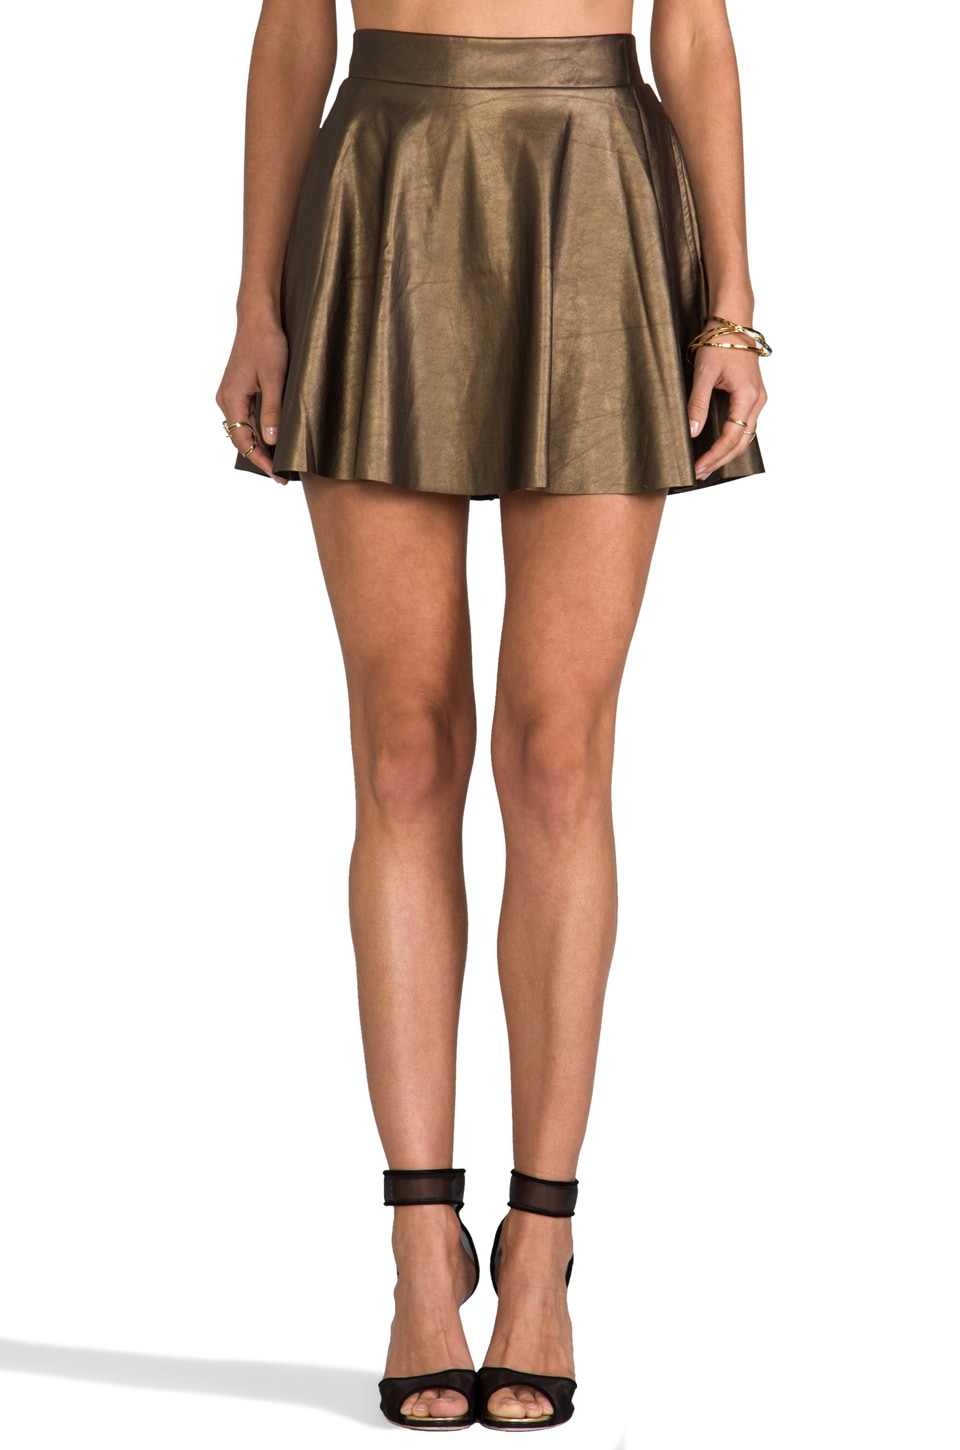 Ella Moss Sandra Faux Leather Skirt in Bronze